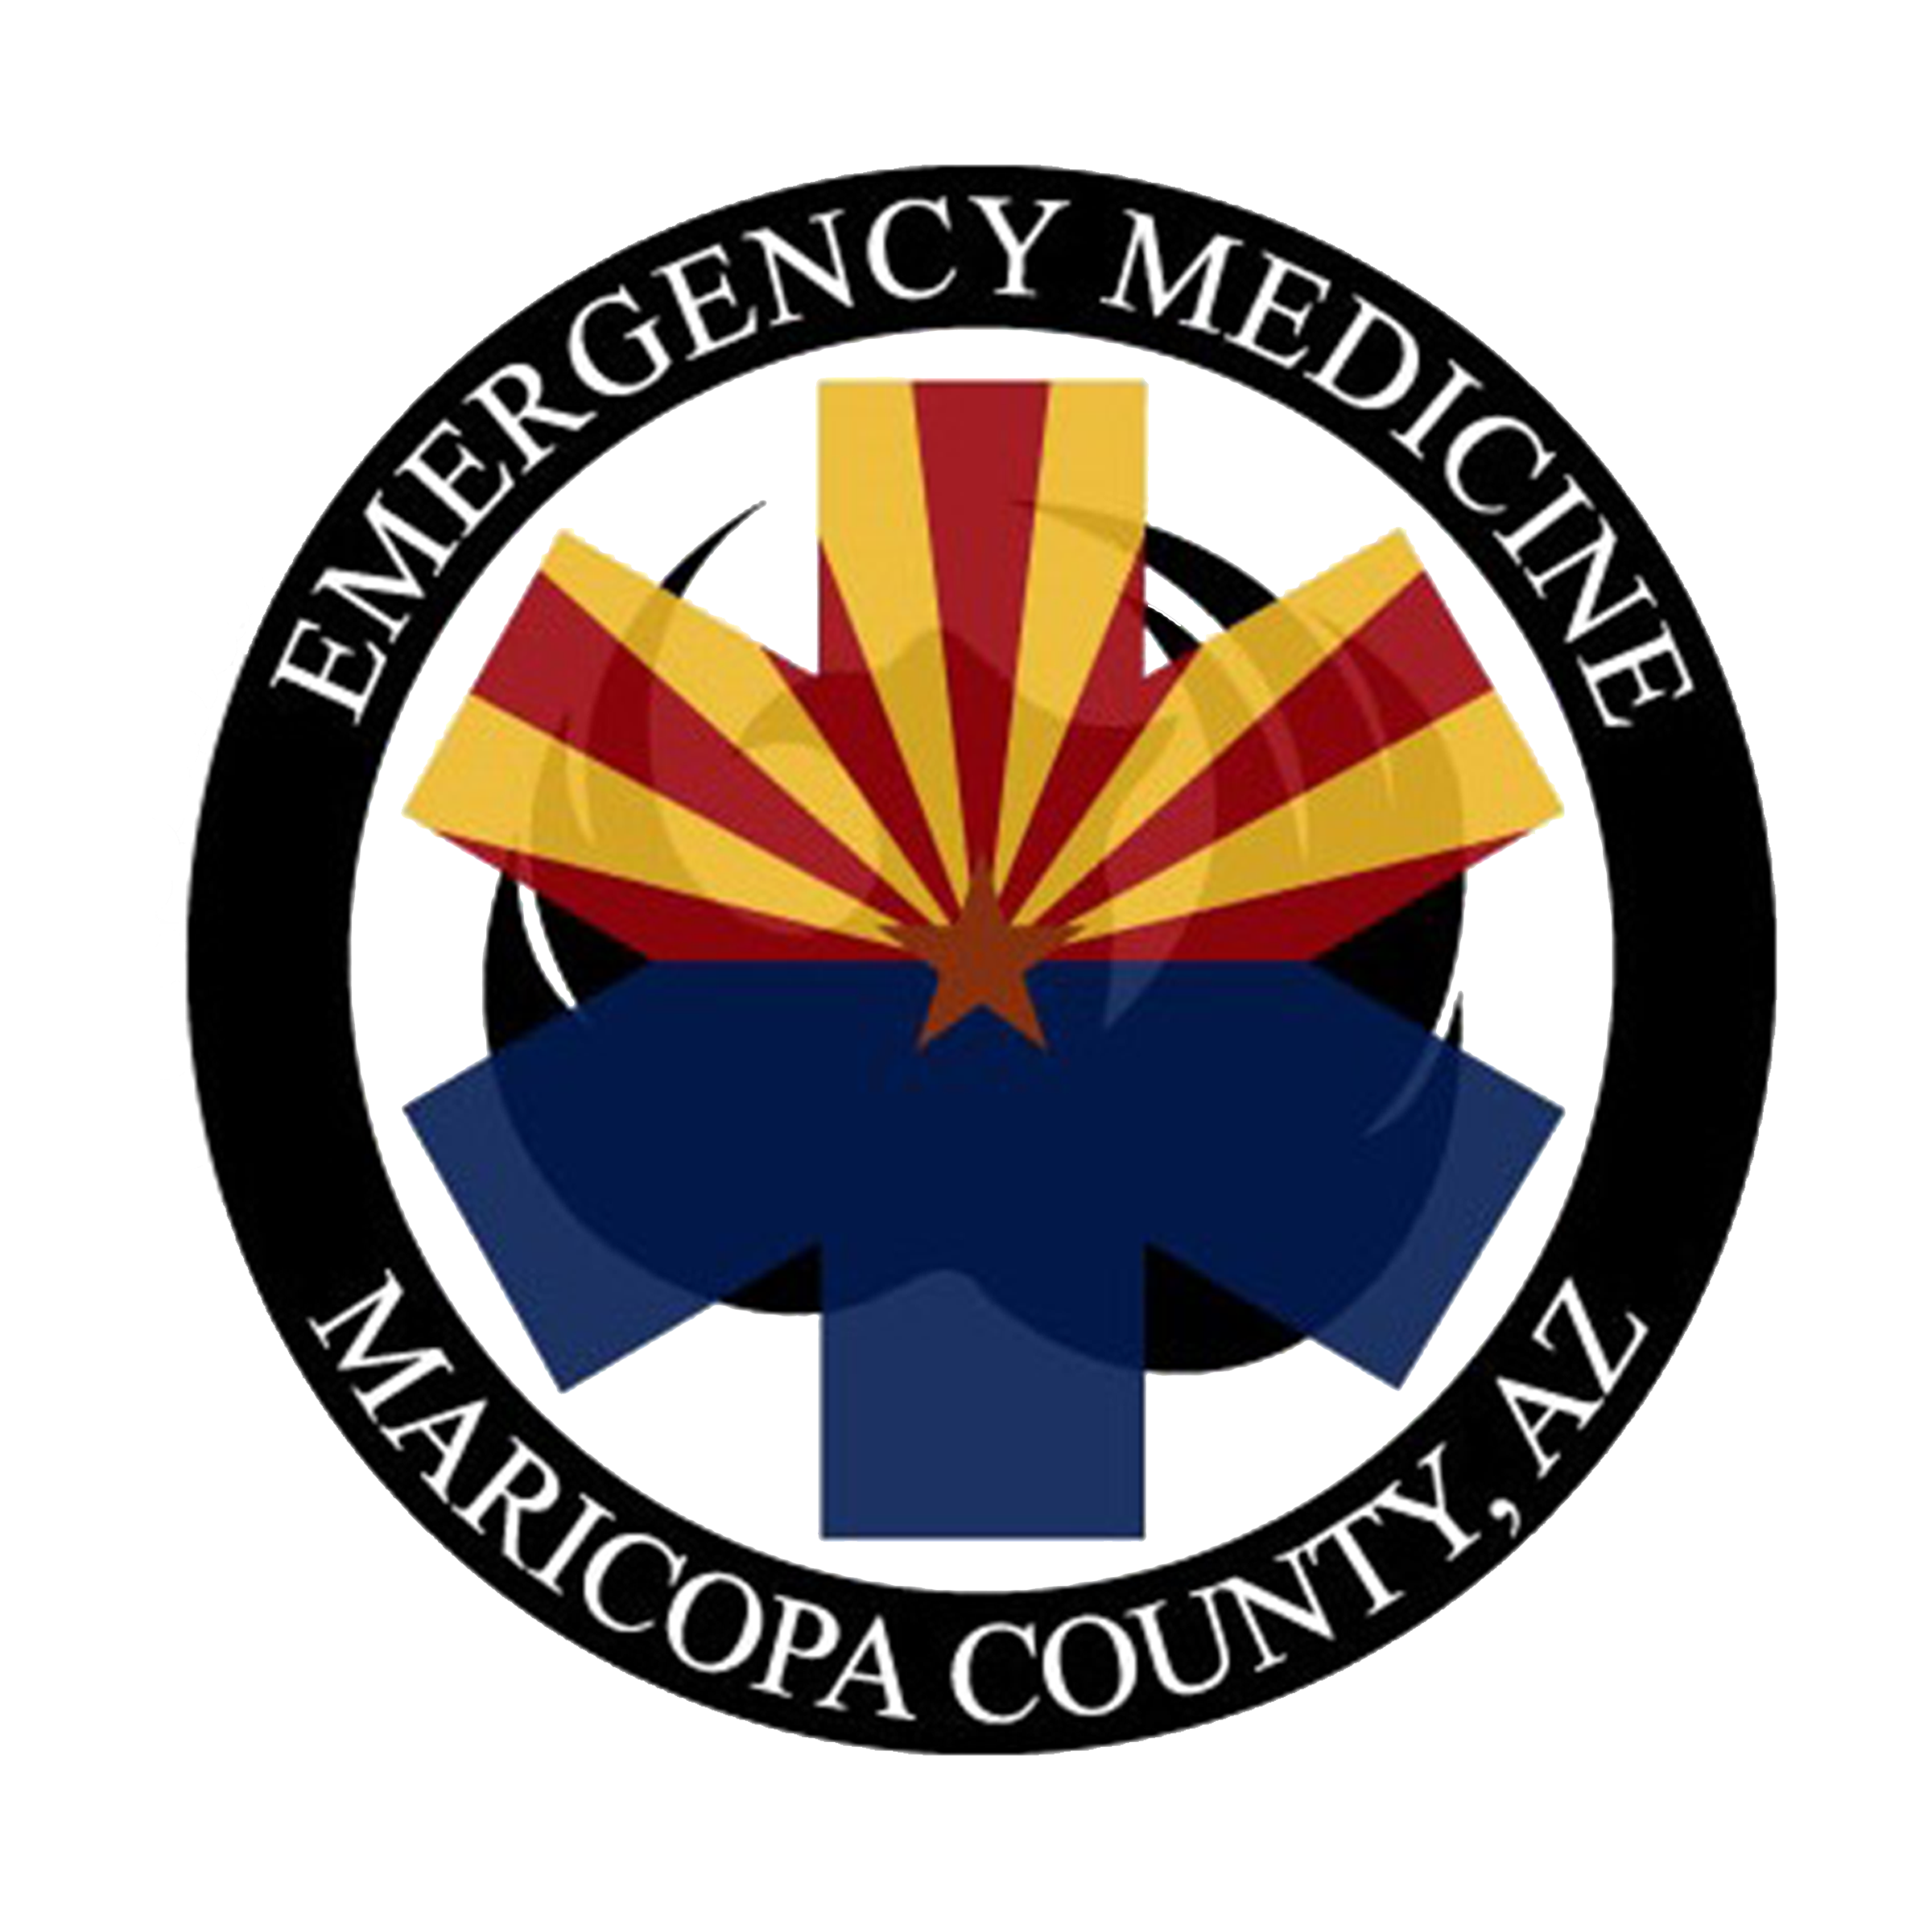 Creighton University School of Medicine/Maricopa Emergency Medicine